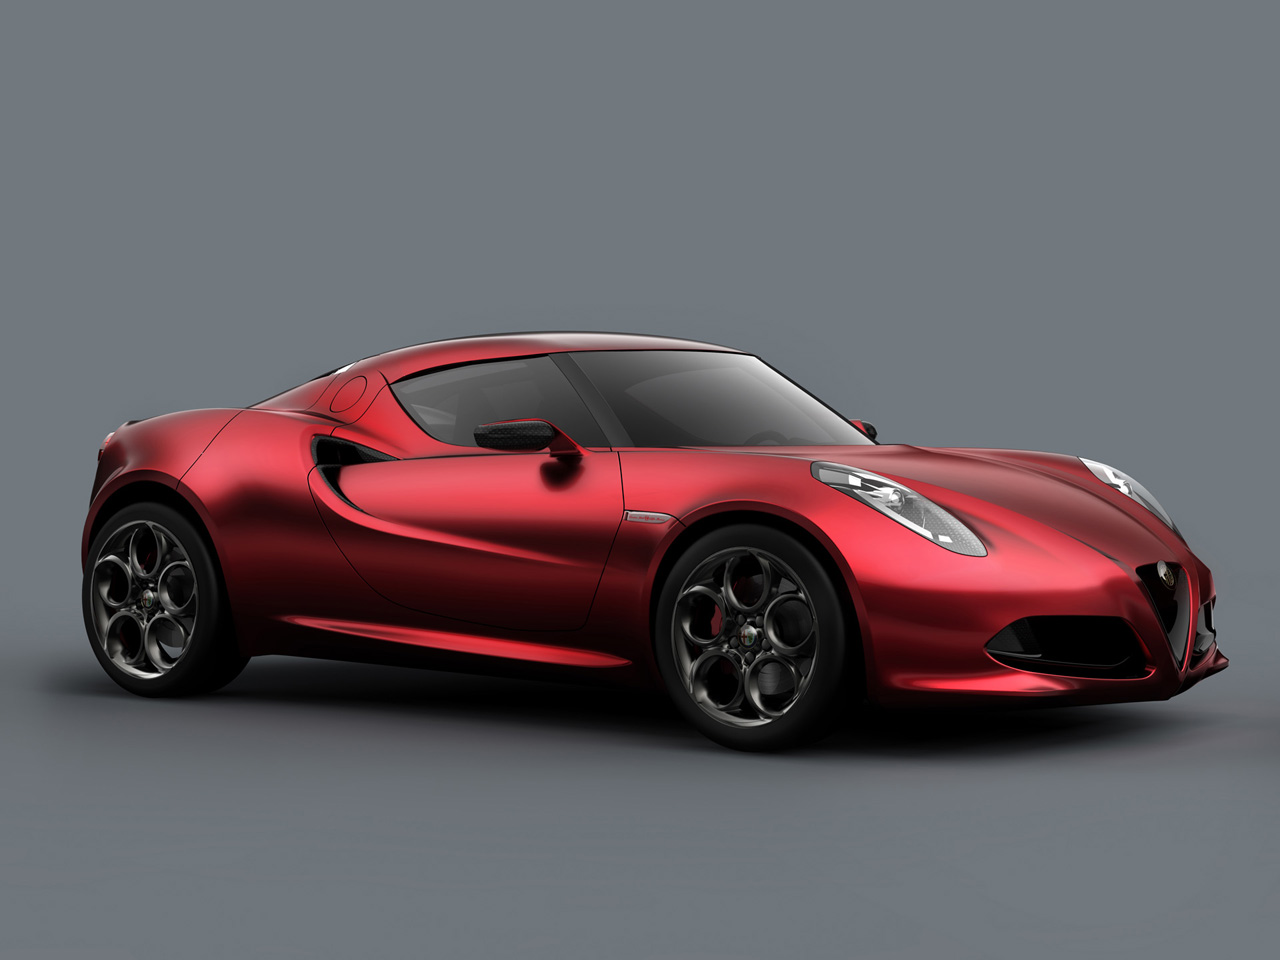 2011 Alfa Romeo 4C Concept 2011-Alfa-Romeo-4C-Concept-Front-And-Side-1280x960